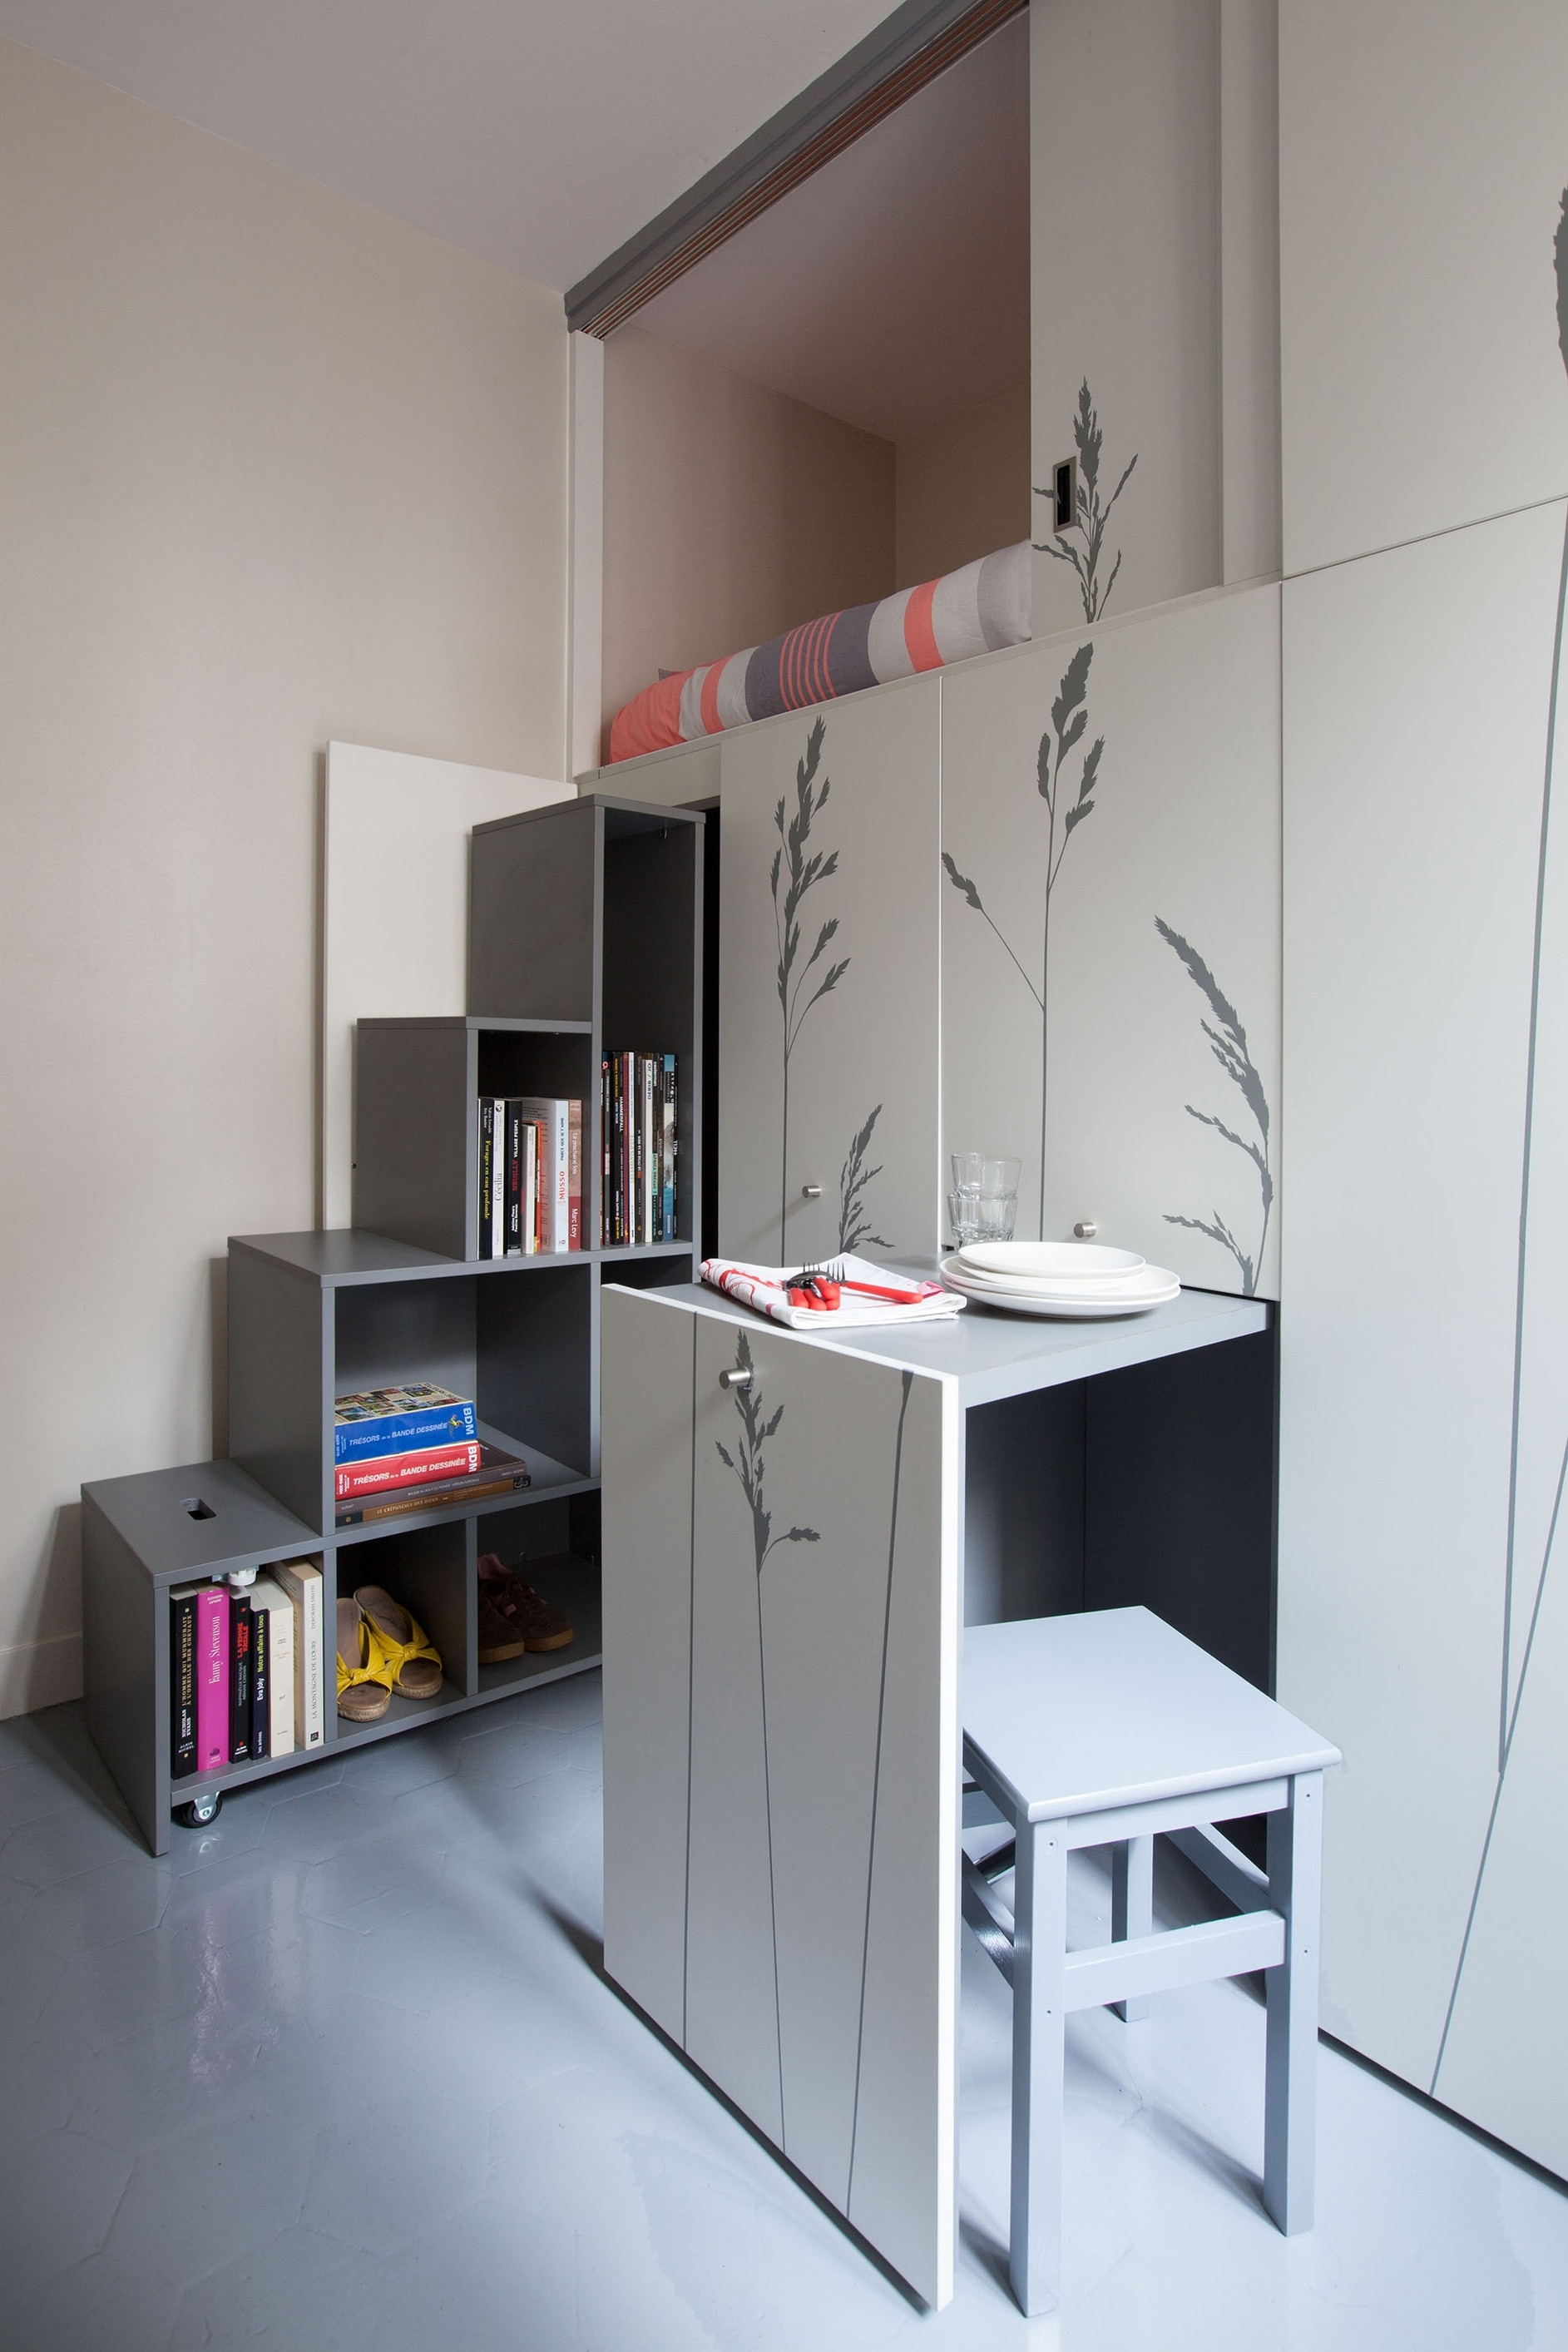 Tiny apartment in paris by kitoko studio karmatrendz for 8 sqm room design